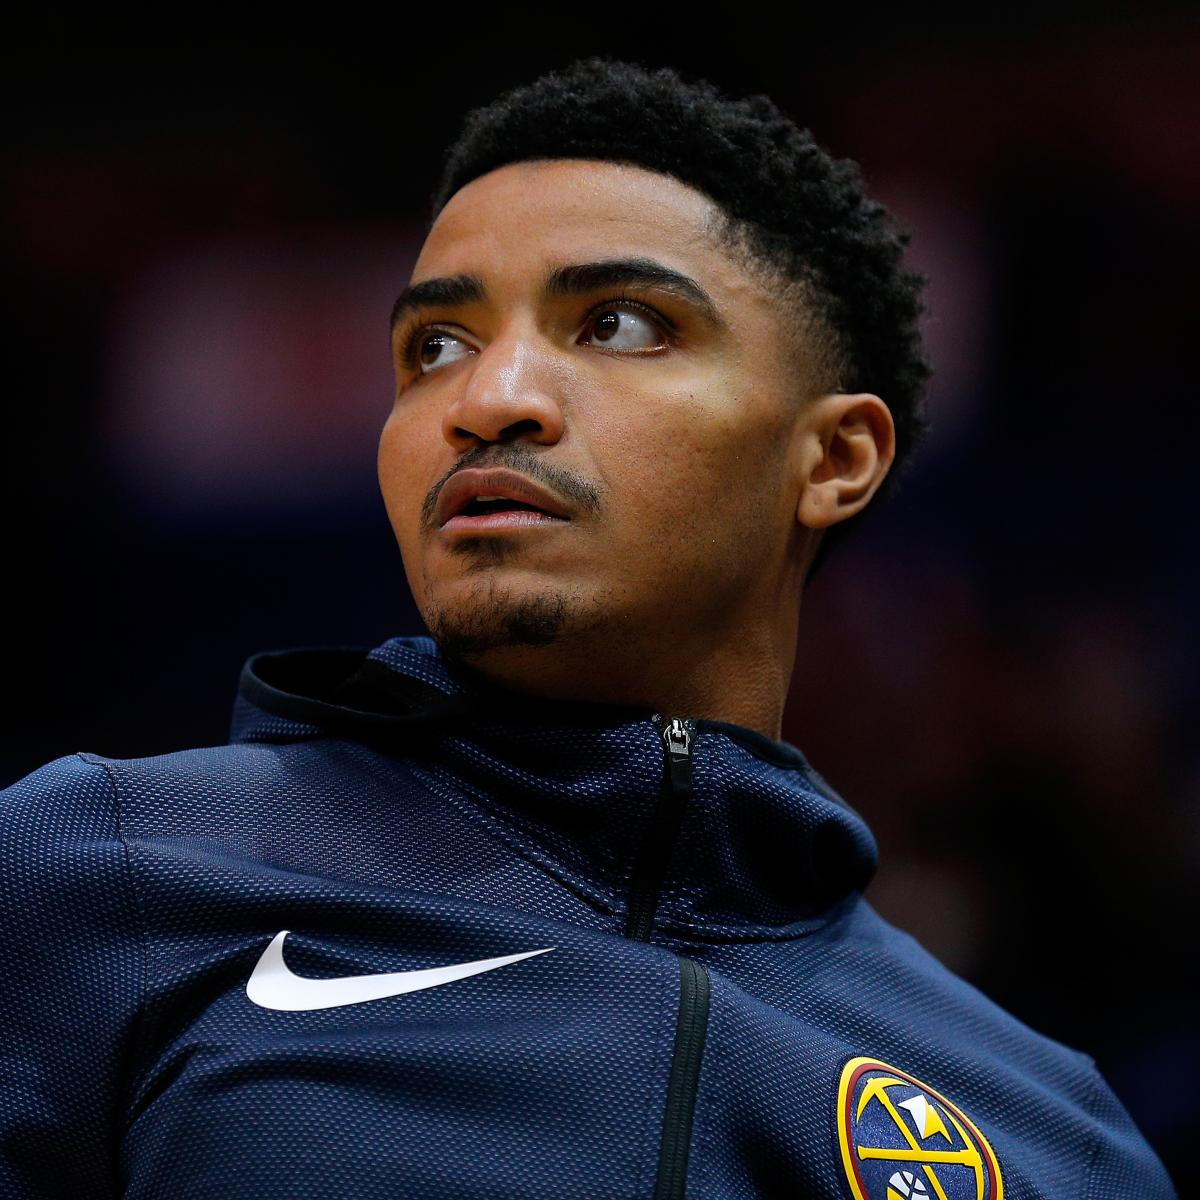 Nuggets Rumors: NBA Trade Rumors: Nuggets Guard Gary Harris 'Can Be Had